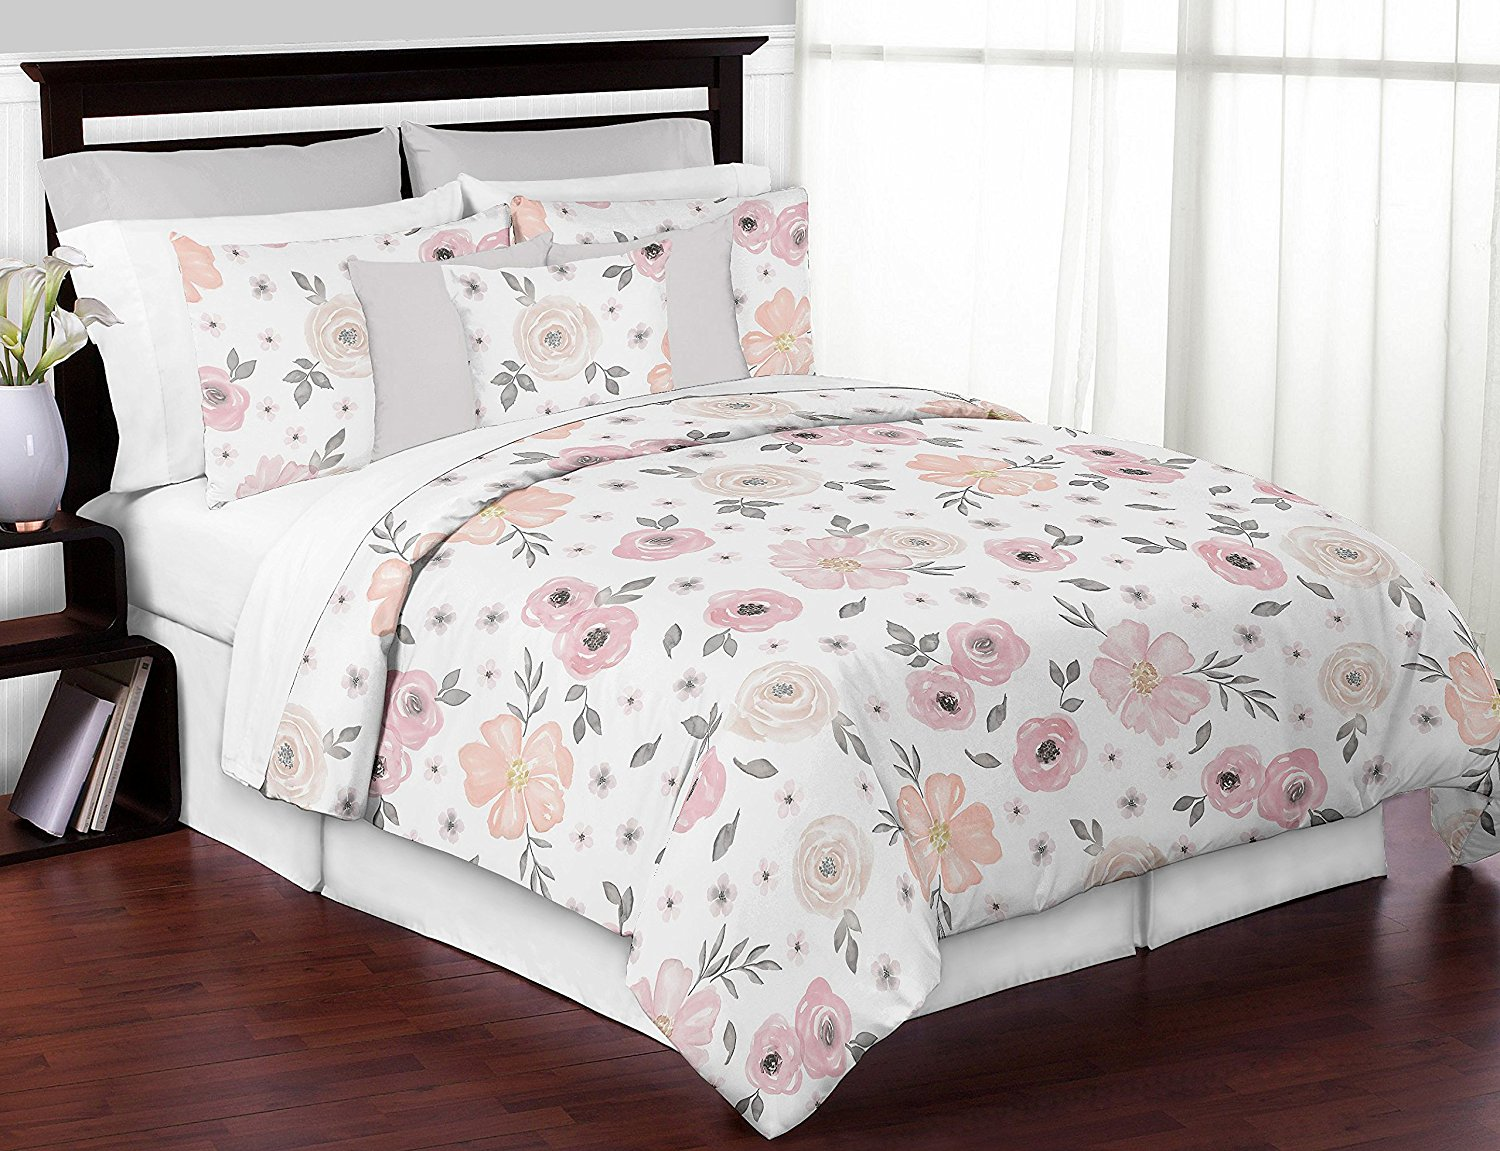 Sweet Jojo Designs 3-Piece Blush Pink, Grey and White Shabby Chic Watercolor Floral Girl Full / Queen Kid Childrens Bedding Comforter Set s - Rose Flower